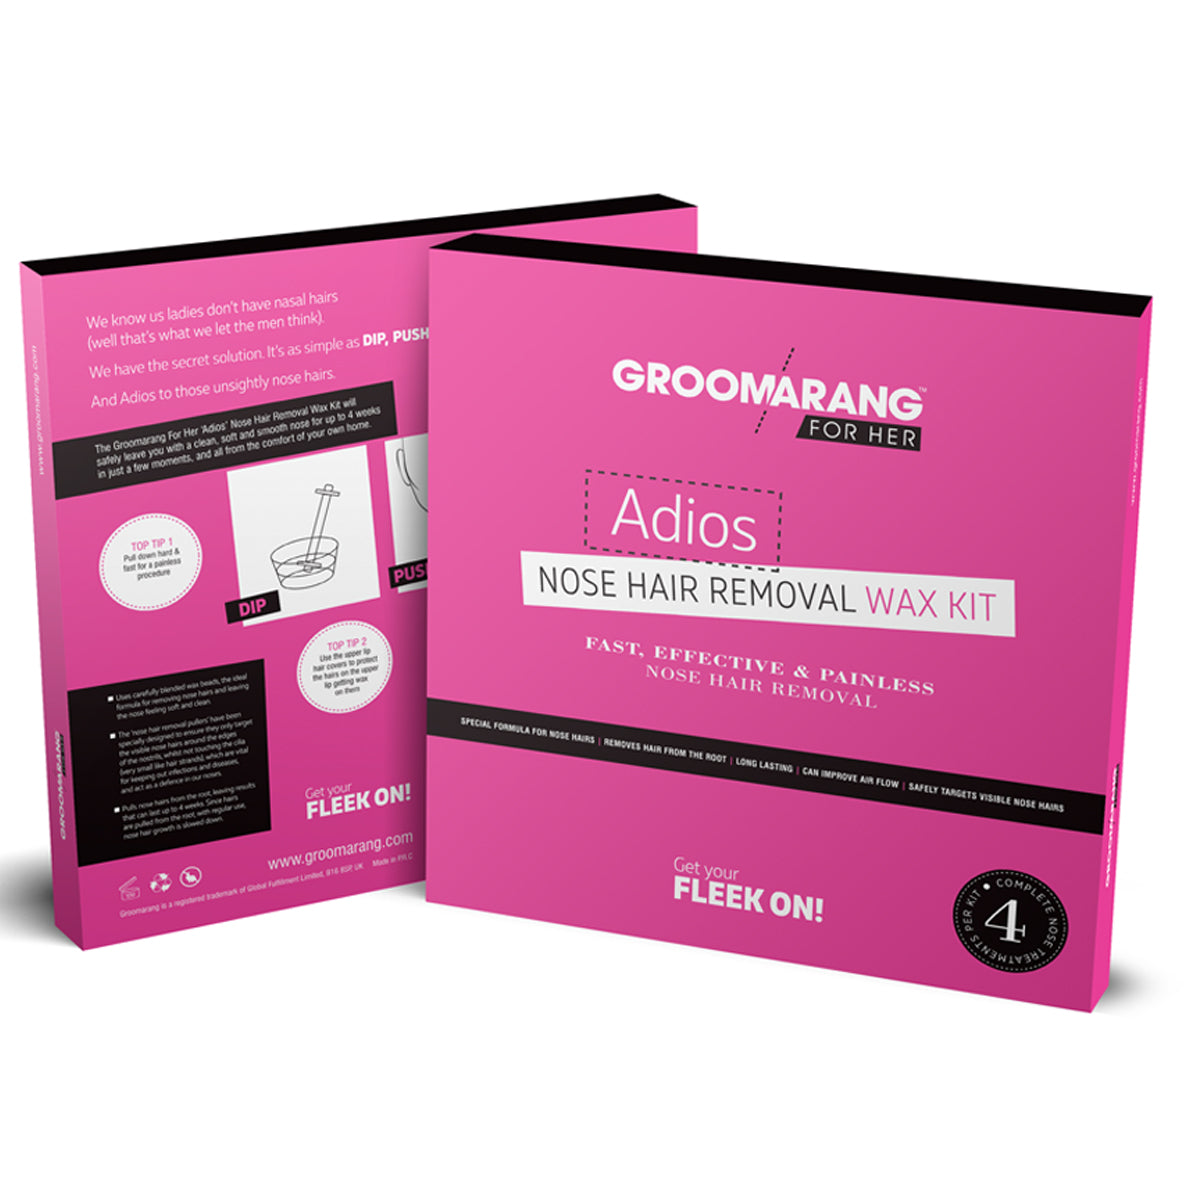 Groomarang For Her- Adios Nose Hair Removal Wax Kit For Her, Hair Removal by Groomarang